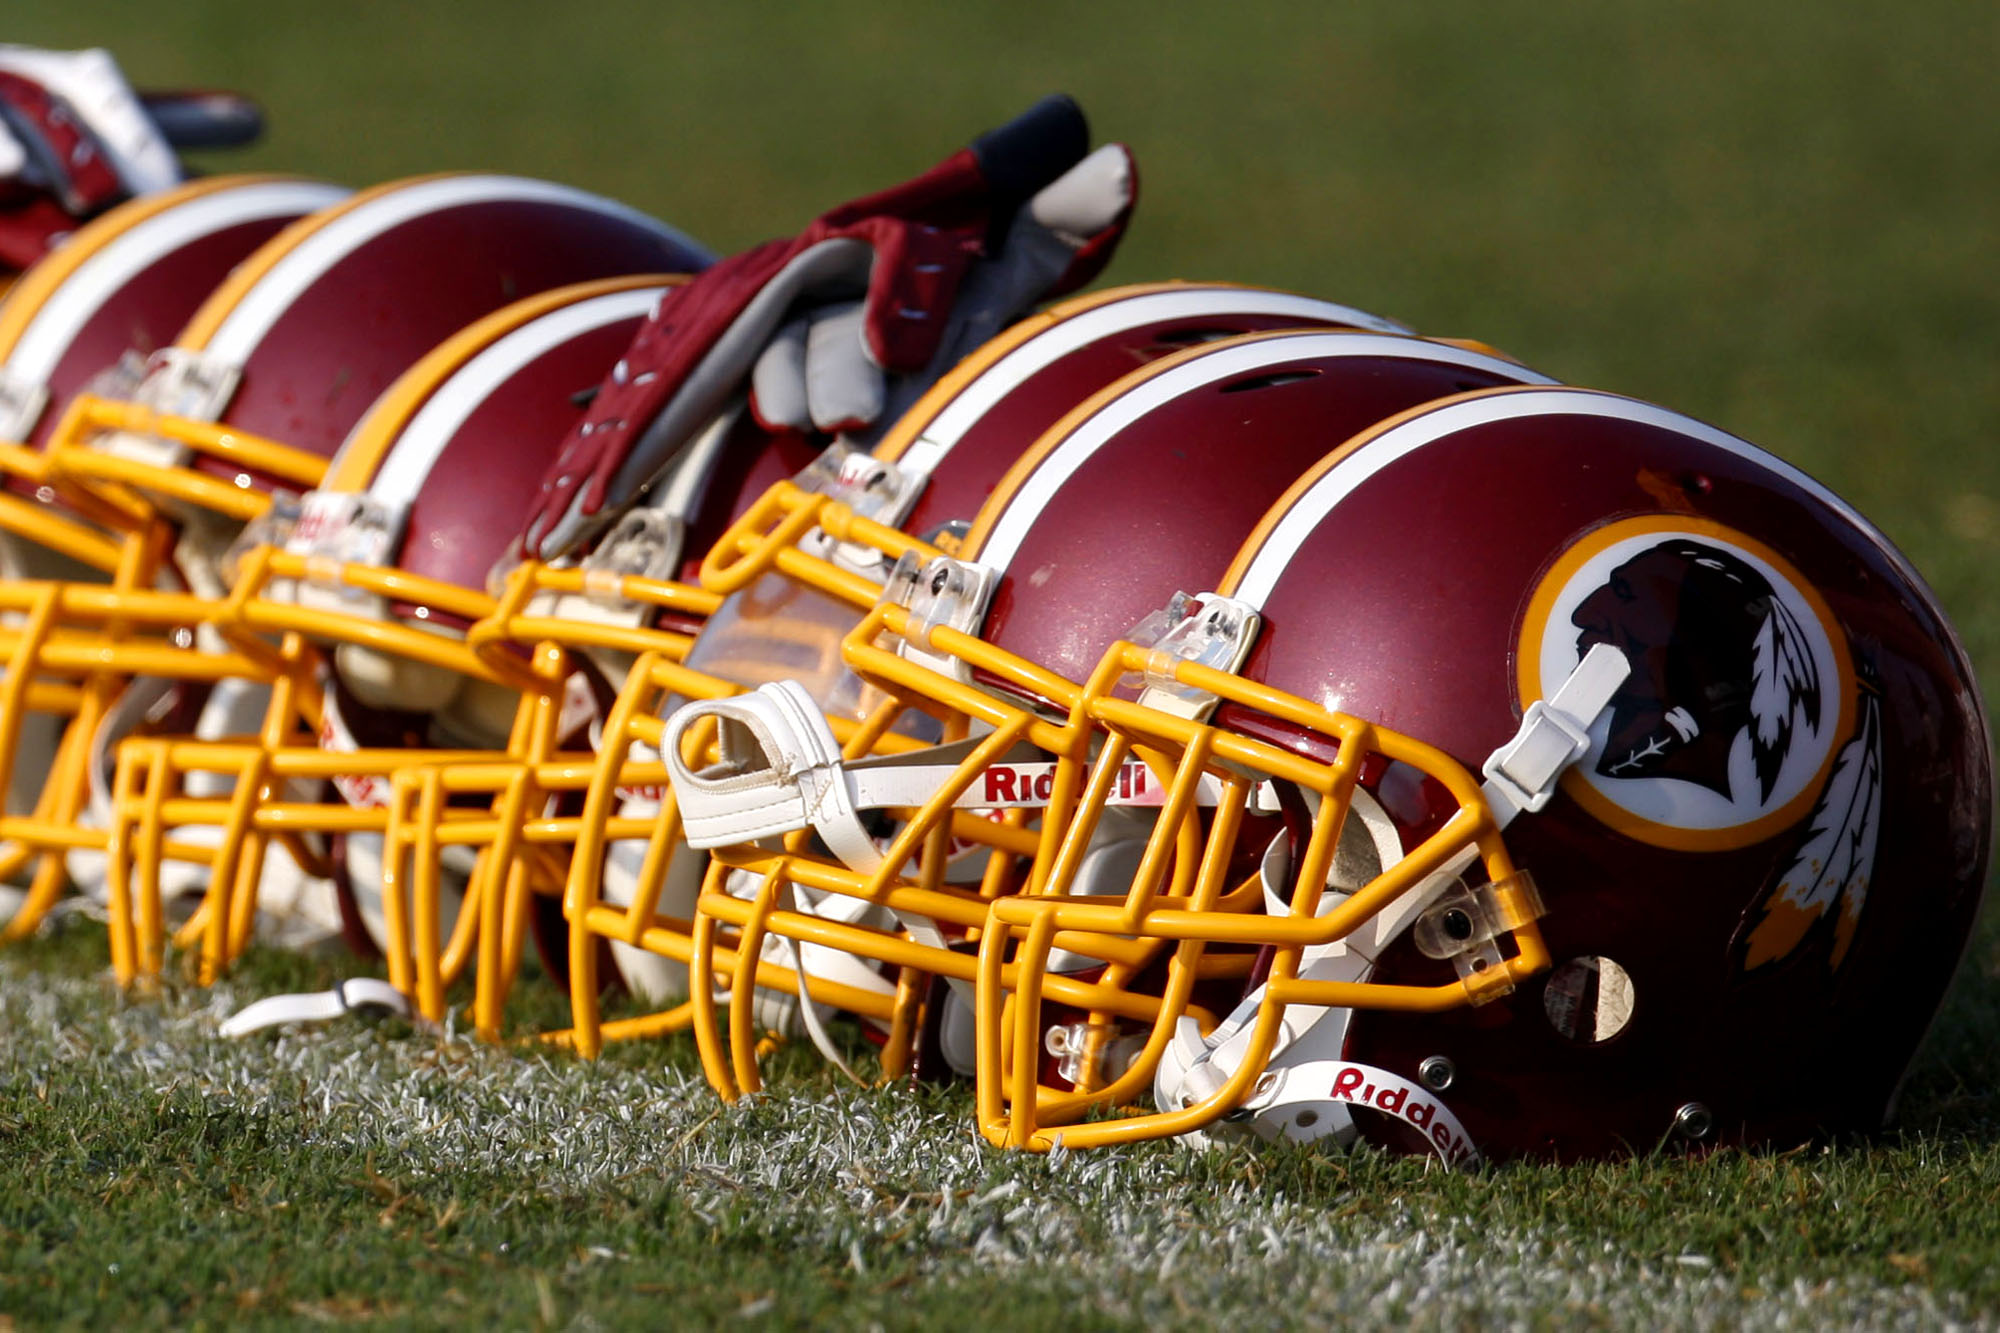 POLL: Elite Media Fail – Only 14% Want Redskins to Change Name